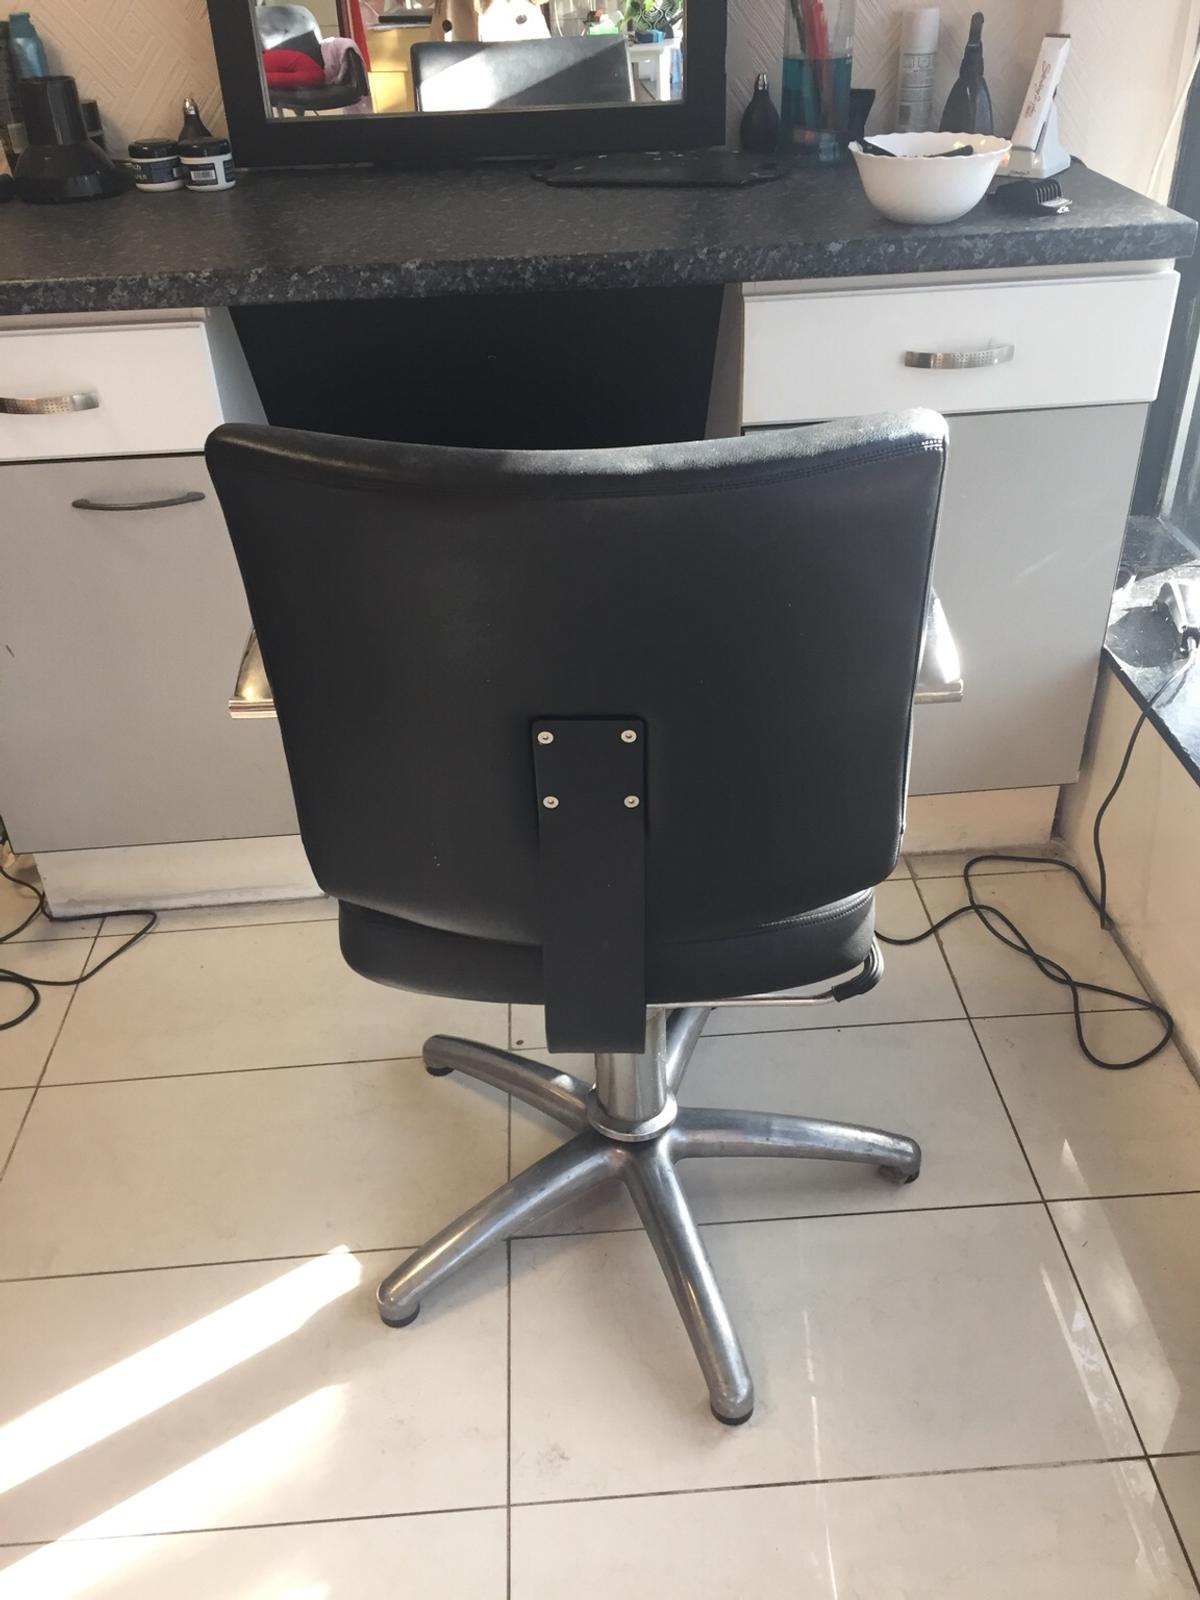 Salon furniture for sale in London for £5.5 for sale  Shpock